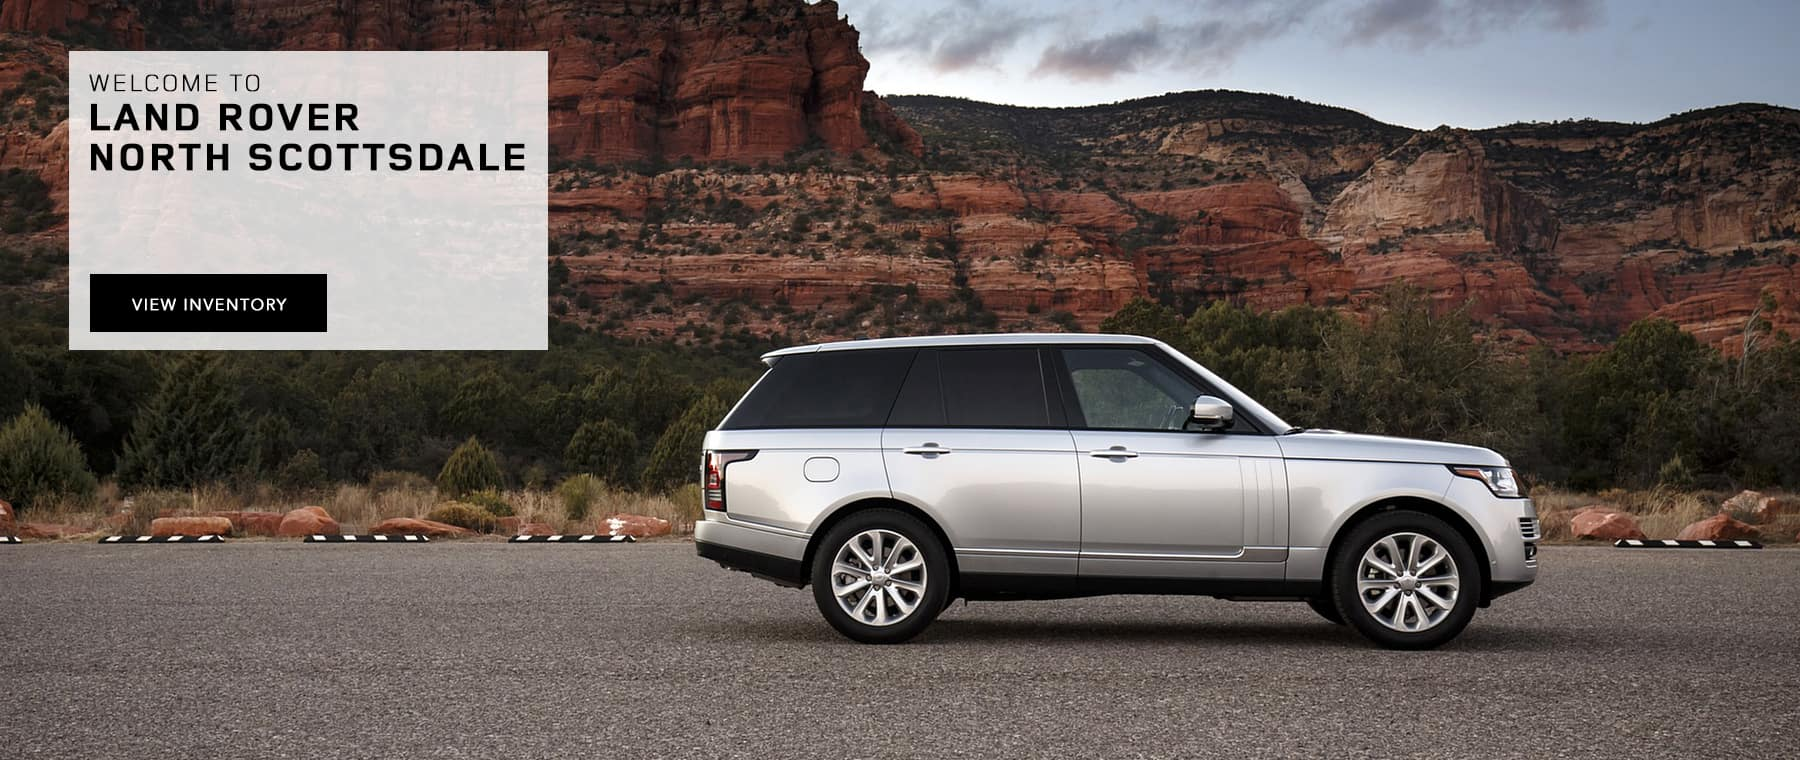 Welcome to Land Rover North Scottsdale Banner